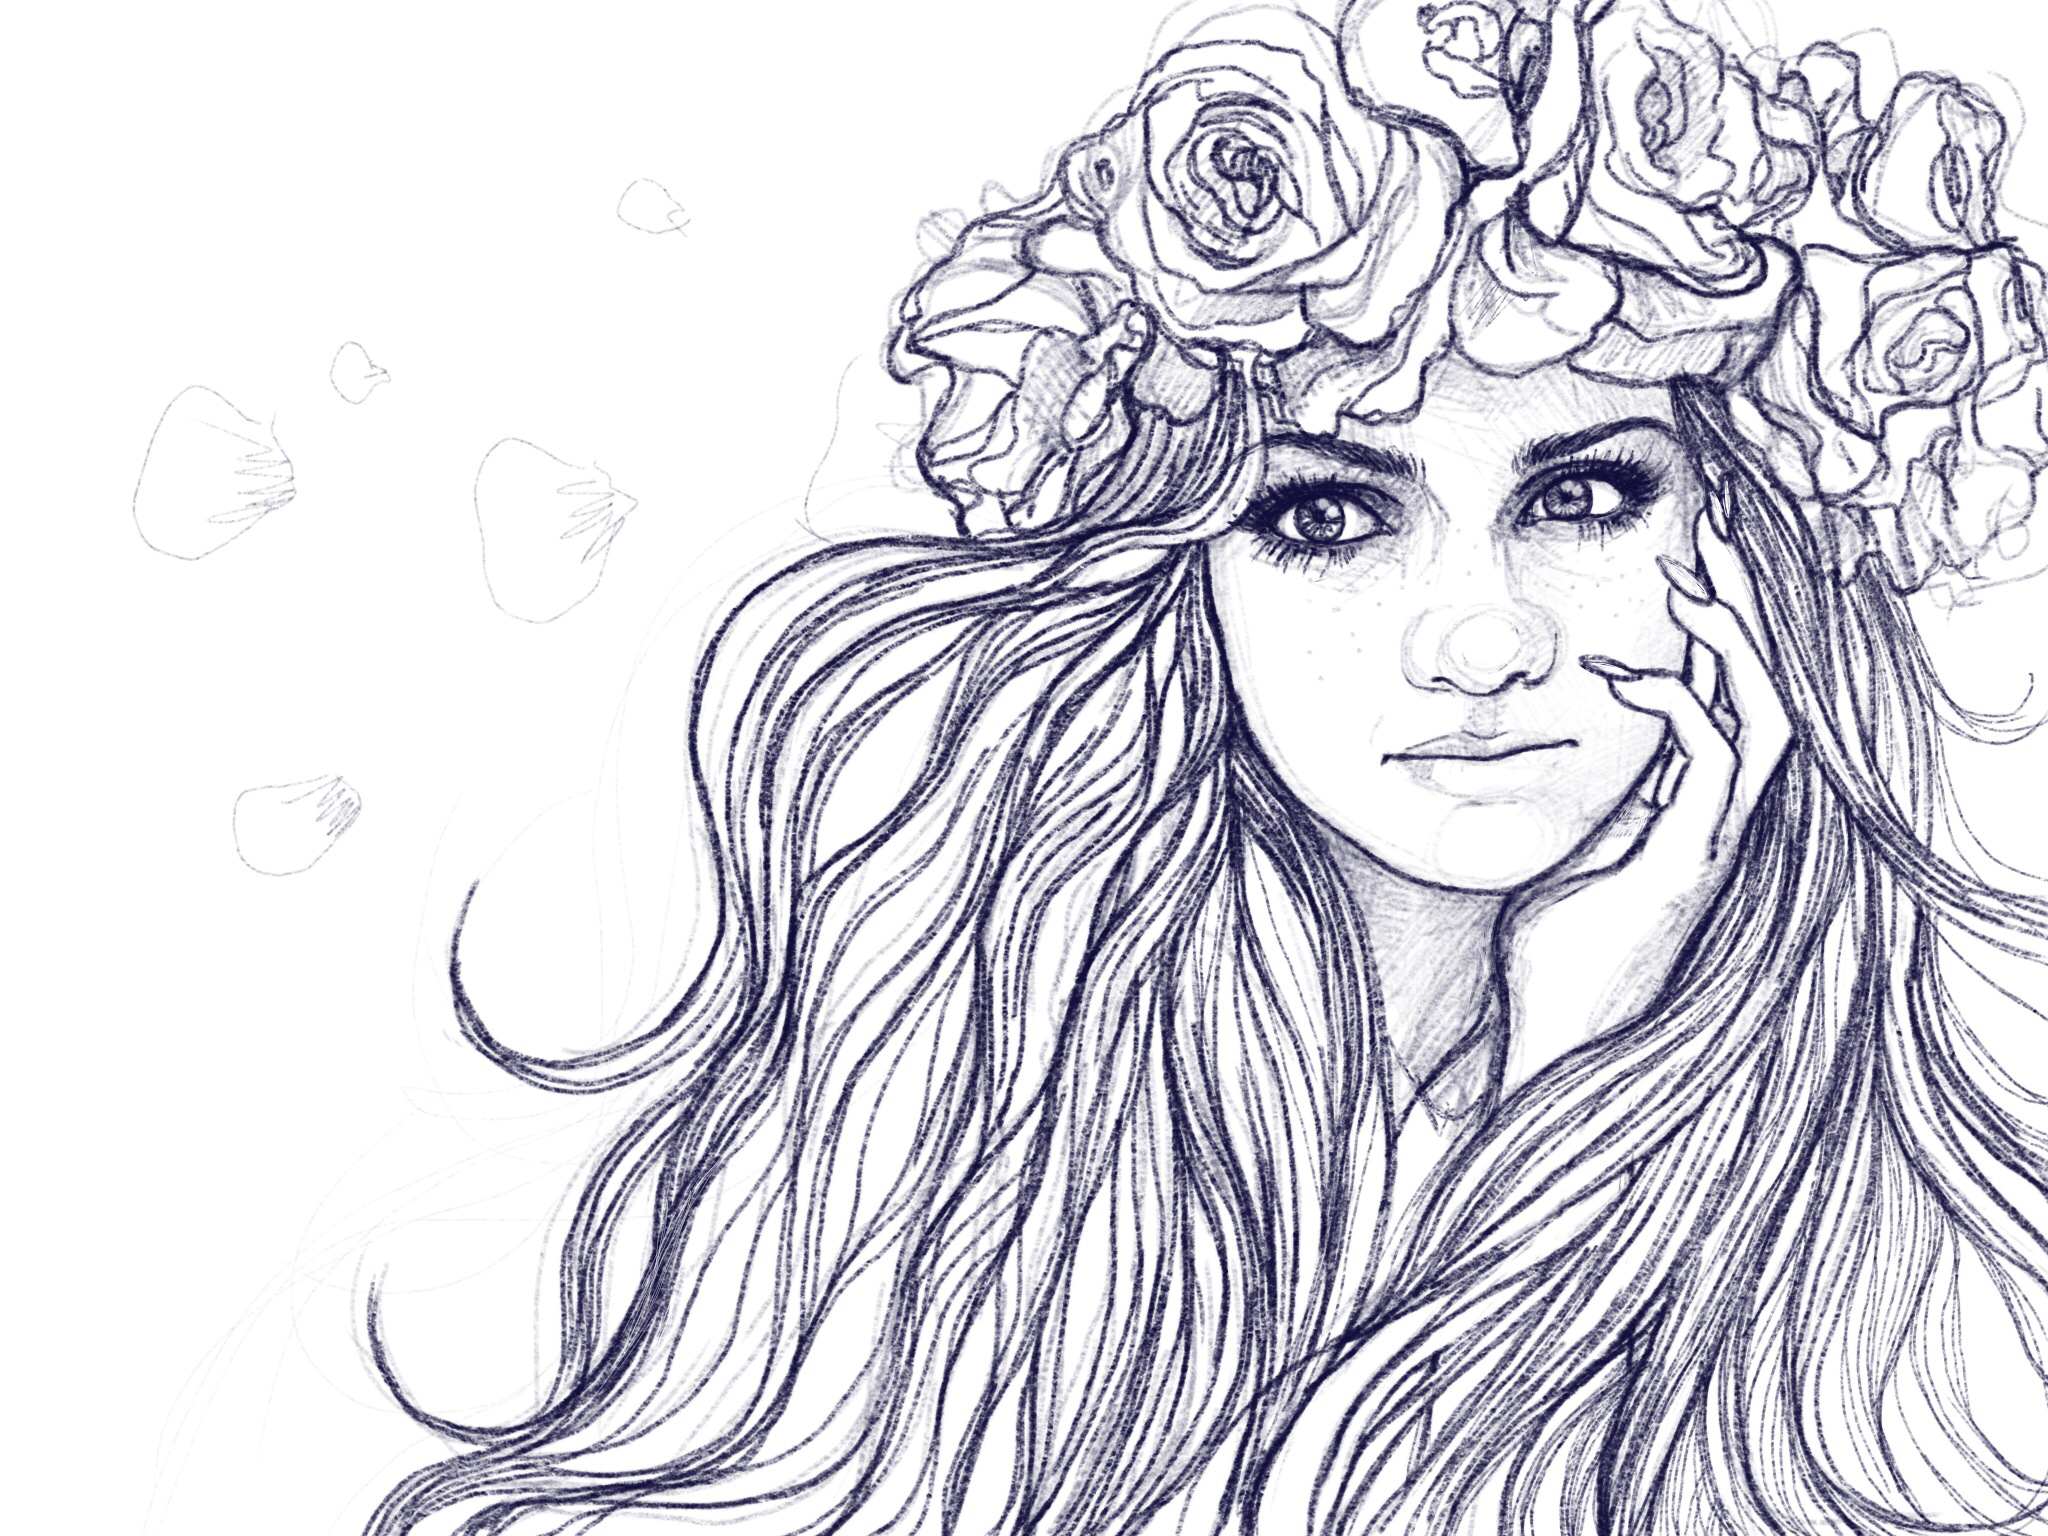 2048x1536 My Drawing Of Girl With Flowers In Her Blowed Hair, Www.qoolka Art